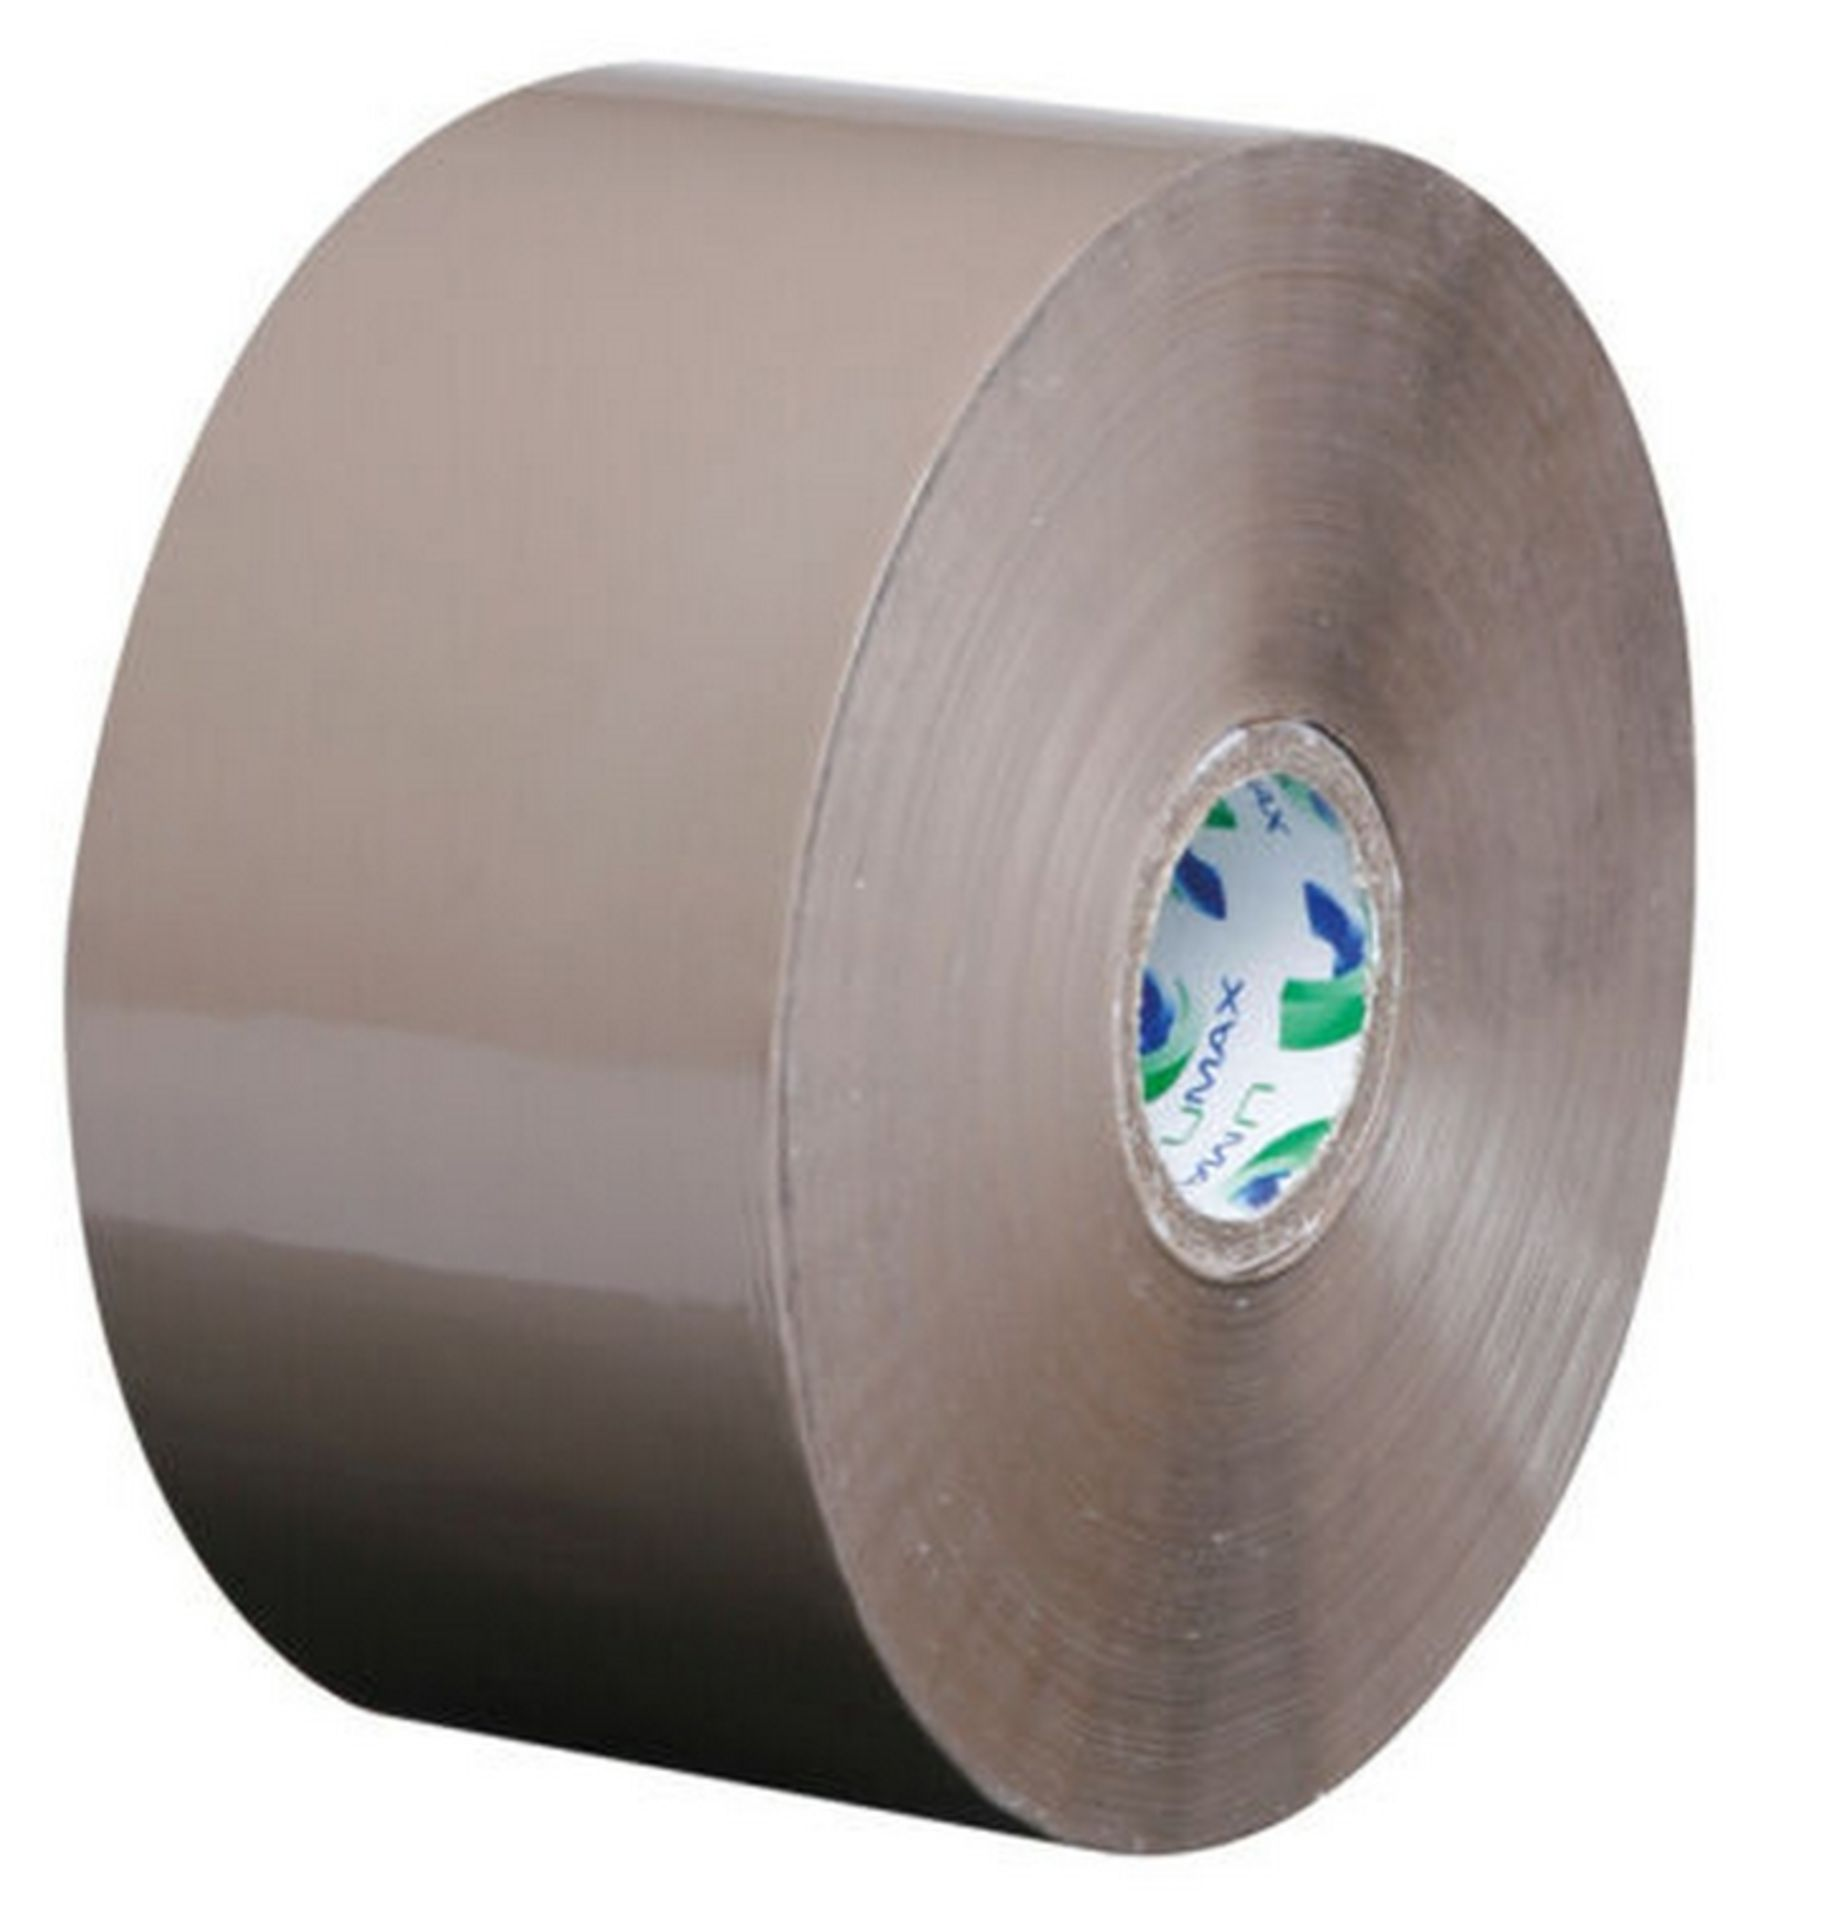 20 Rolls Of Top Quality Buff Parcel Tape 48Mm Wide And 150 Meters Long, Yes You Read